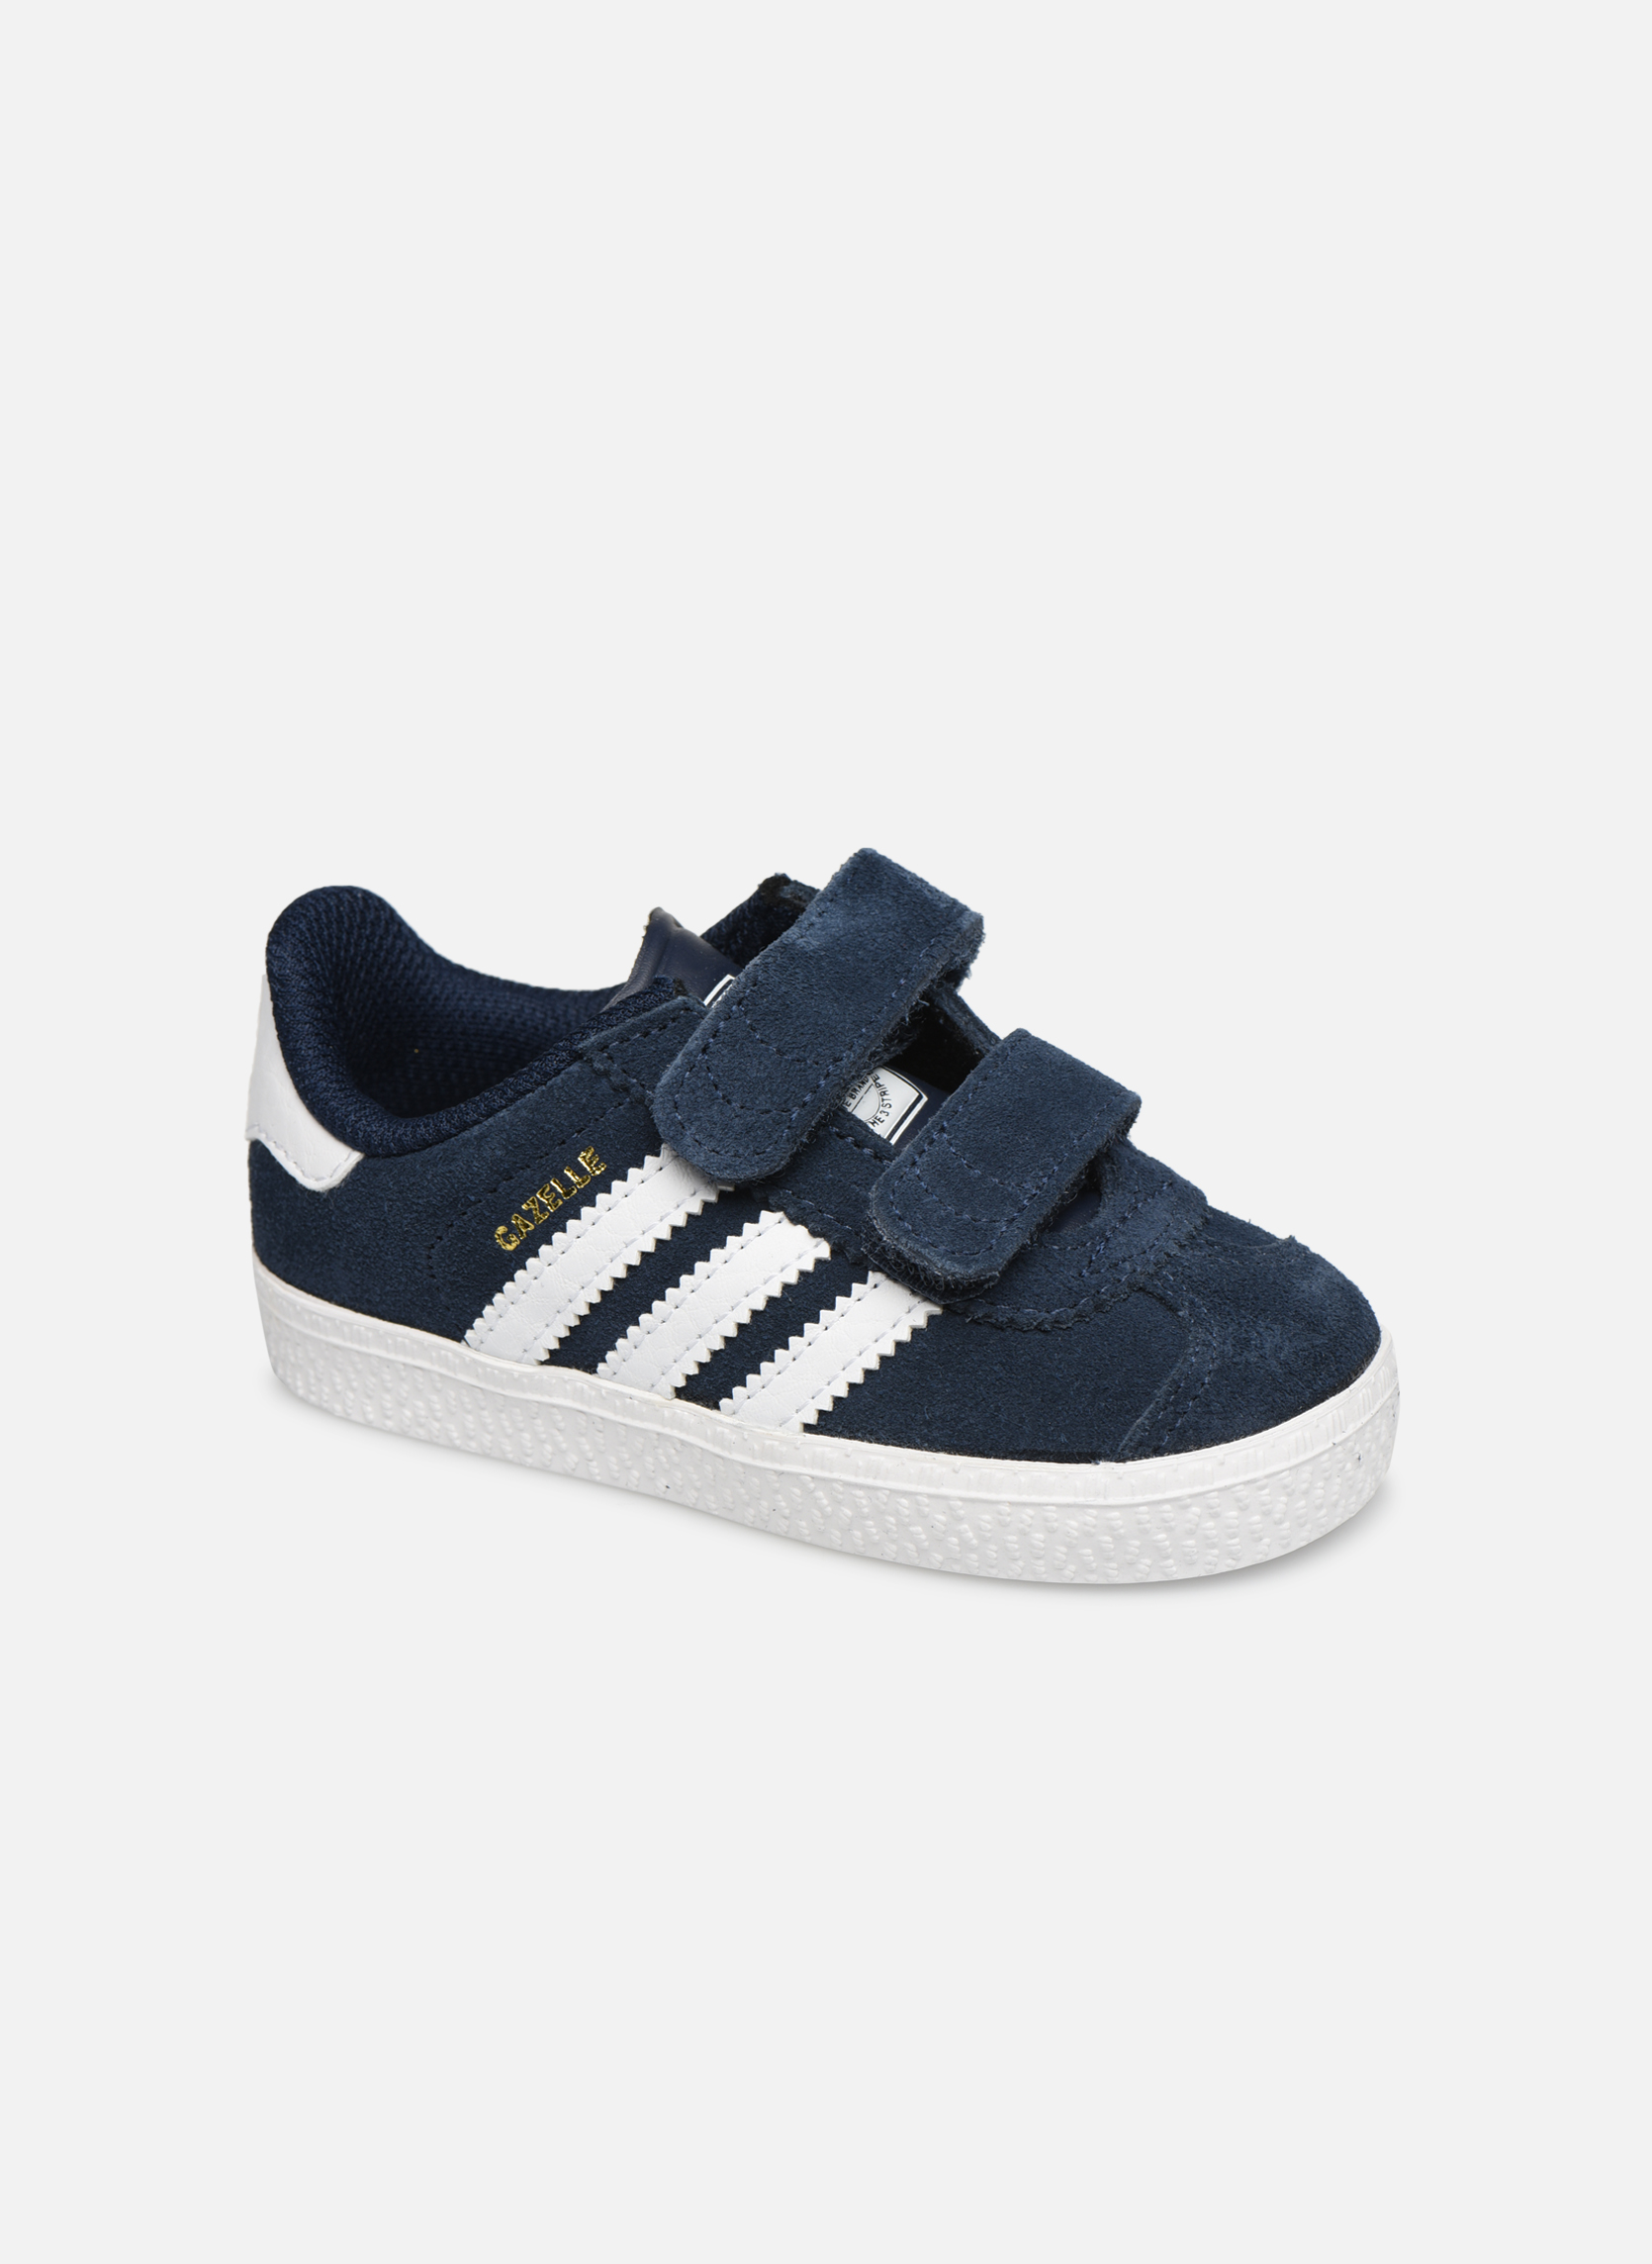 Adidas Originals Gazelle 2 CF I